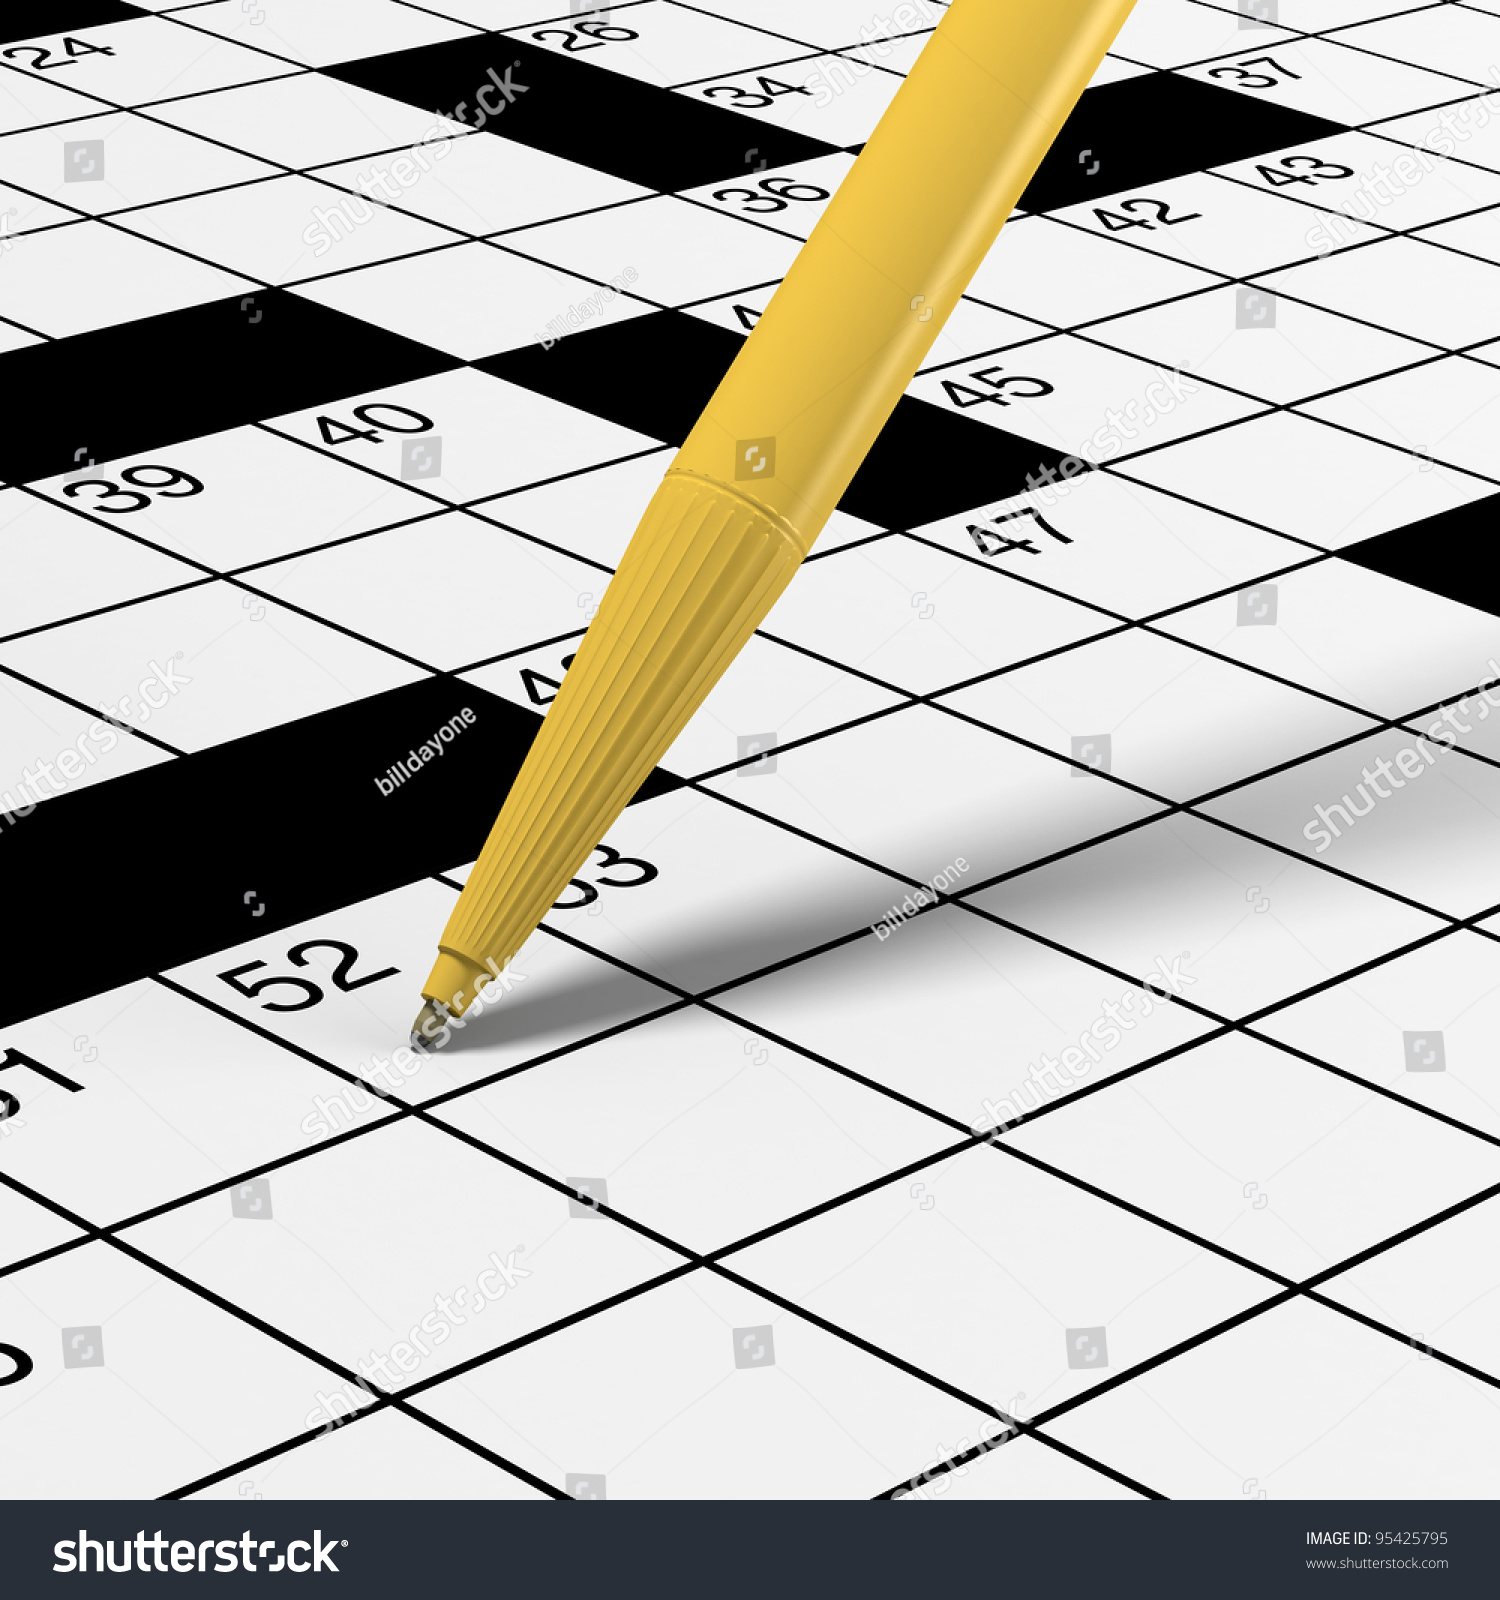 Great Crossword Puzzle Detail With Yellow Ballpoint Pen Ready For Solving